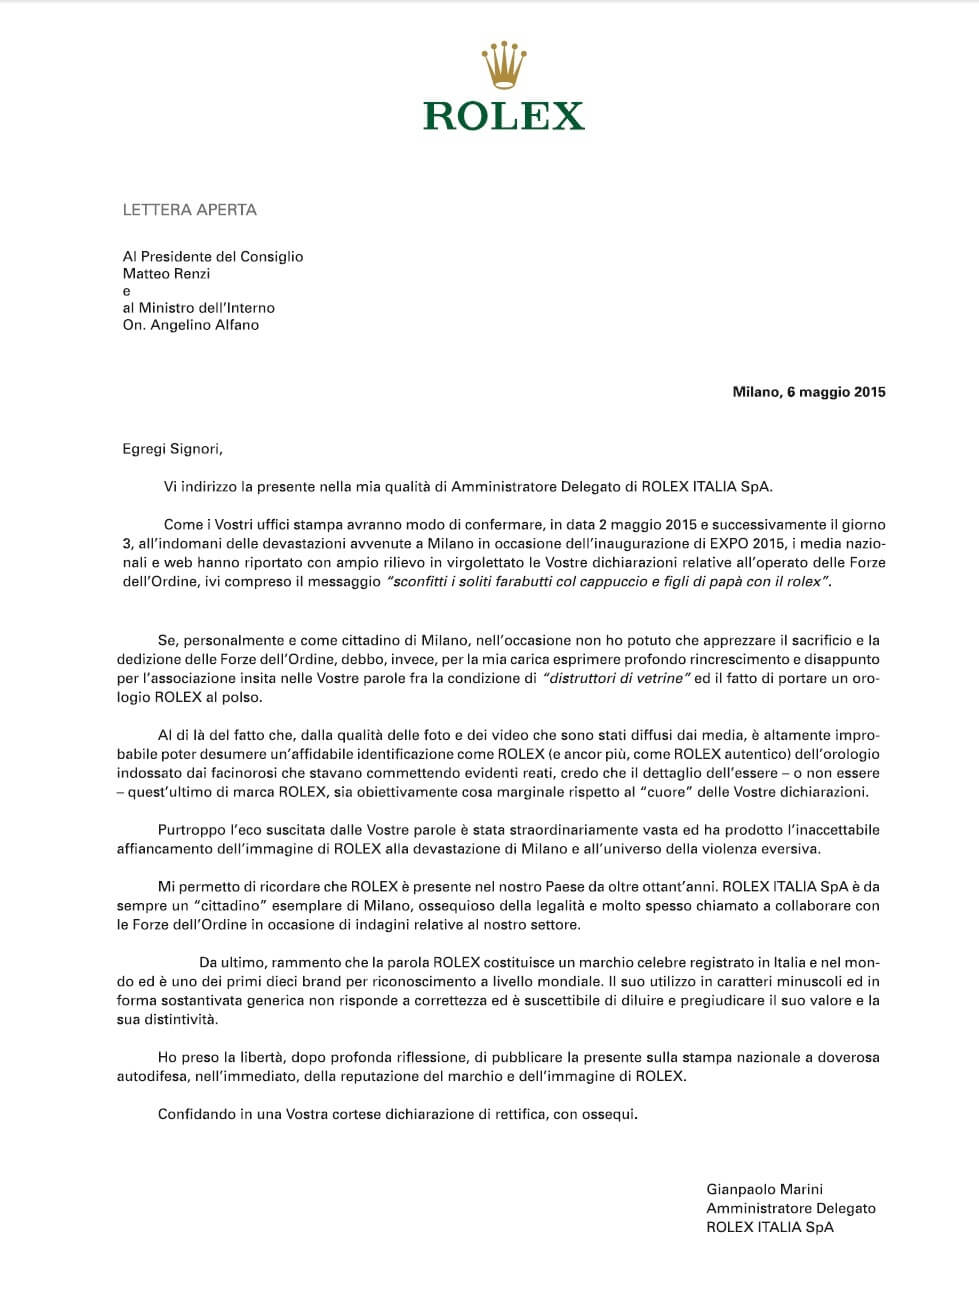 Rolex-Brief-Renzi-Alfano